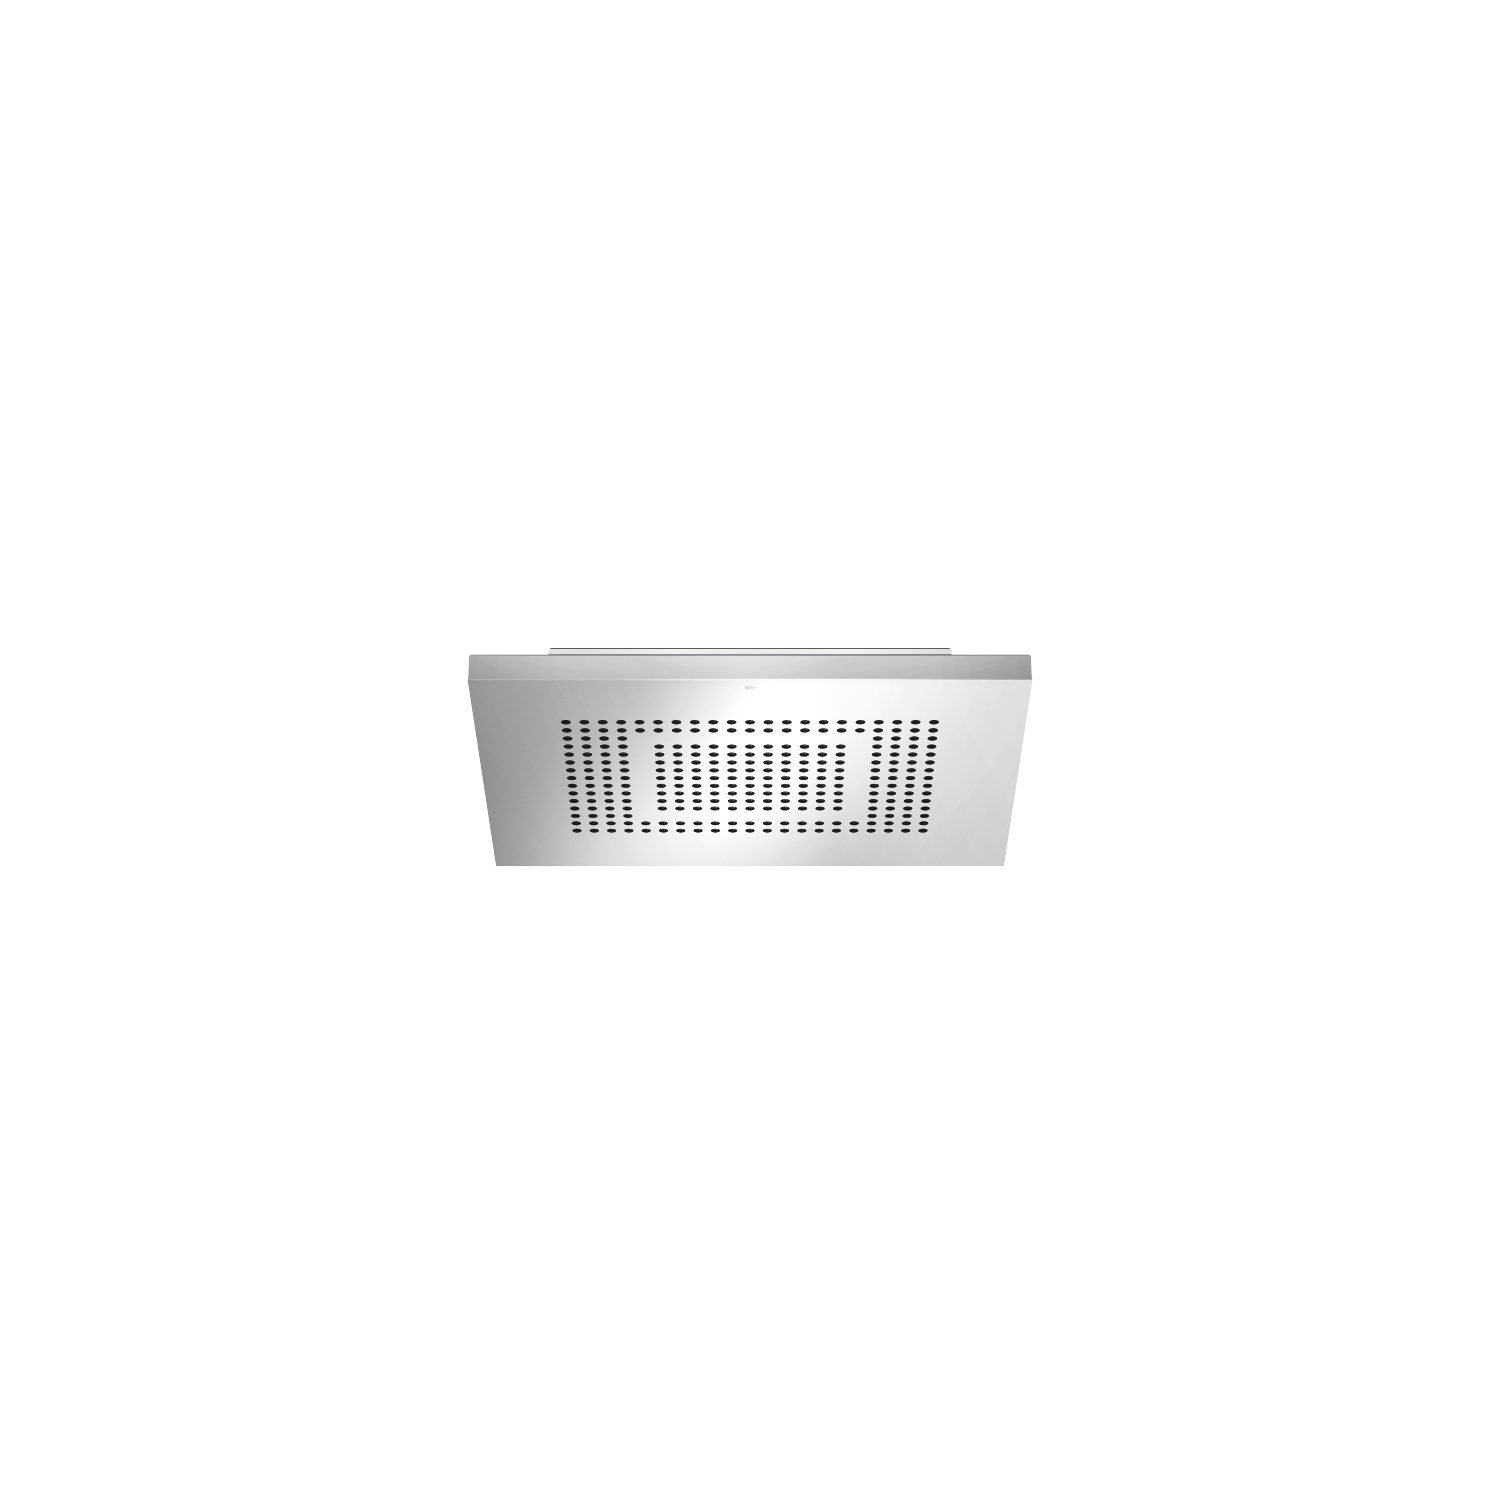 BIG RAIN Rain panel for flush ceiling installation  manual control - polished stainless steel